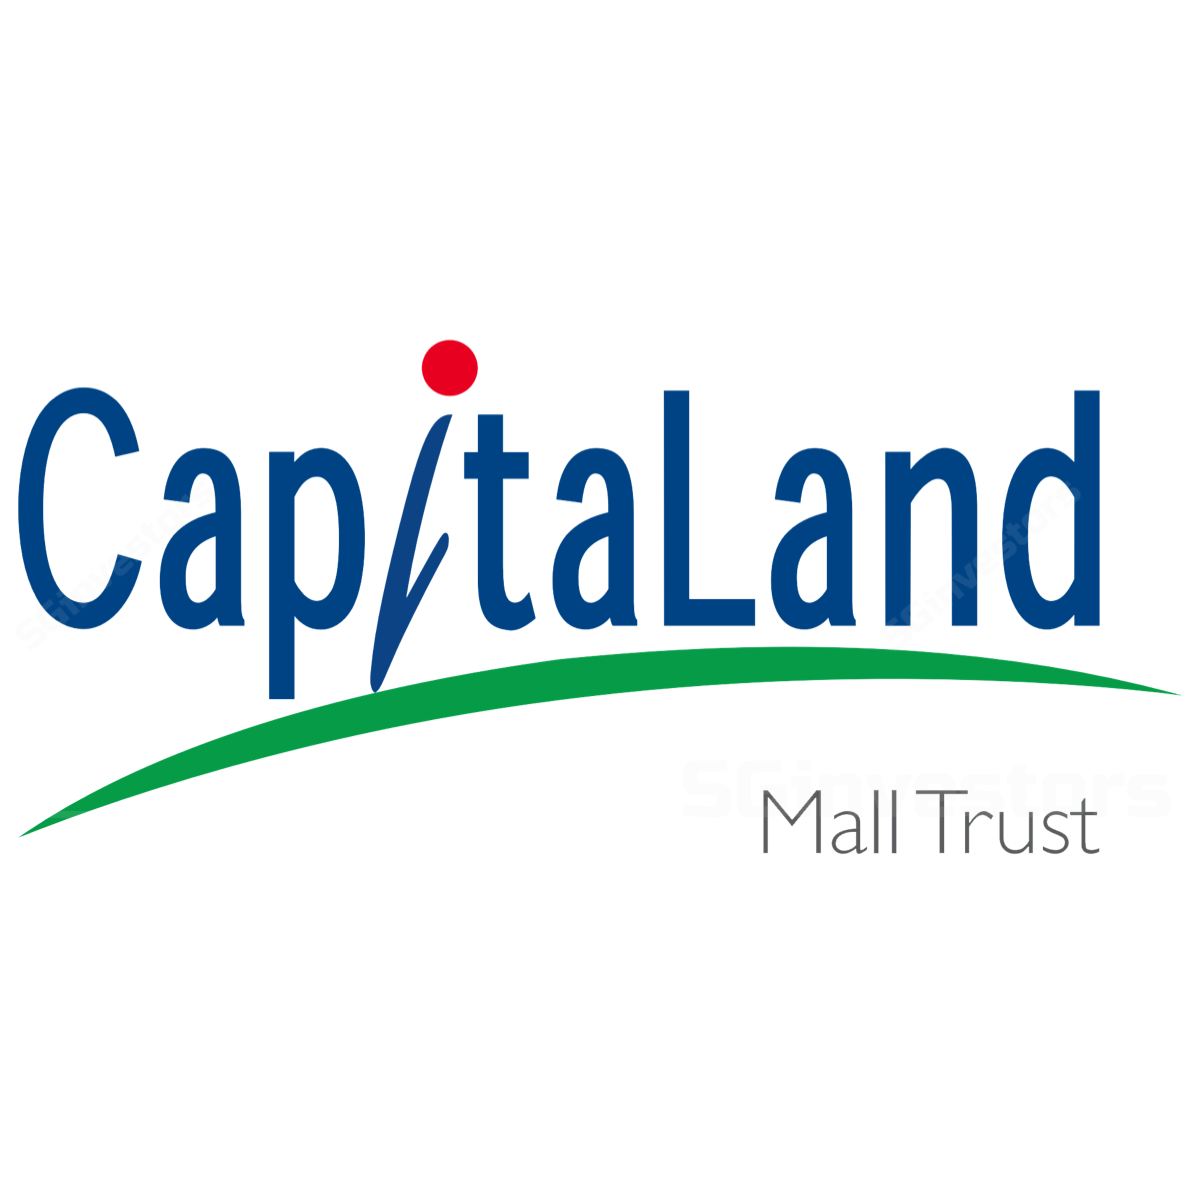 Capitaland Mall Trust Logo.png